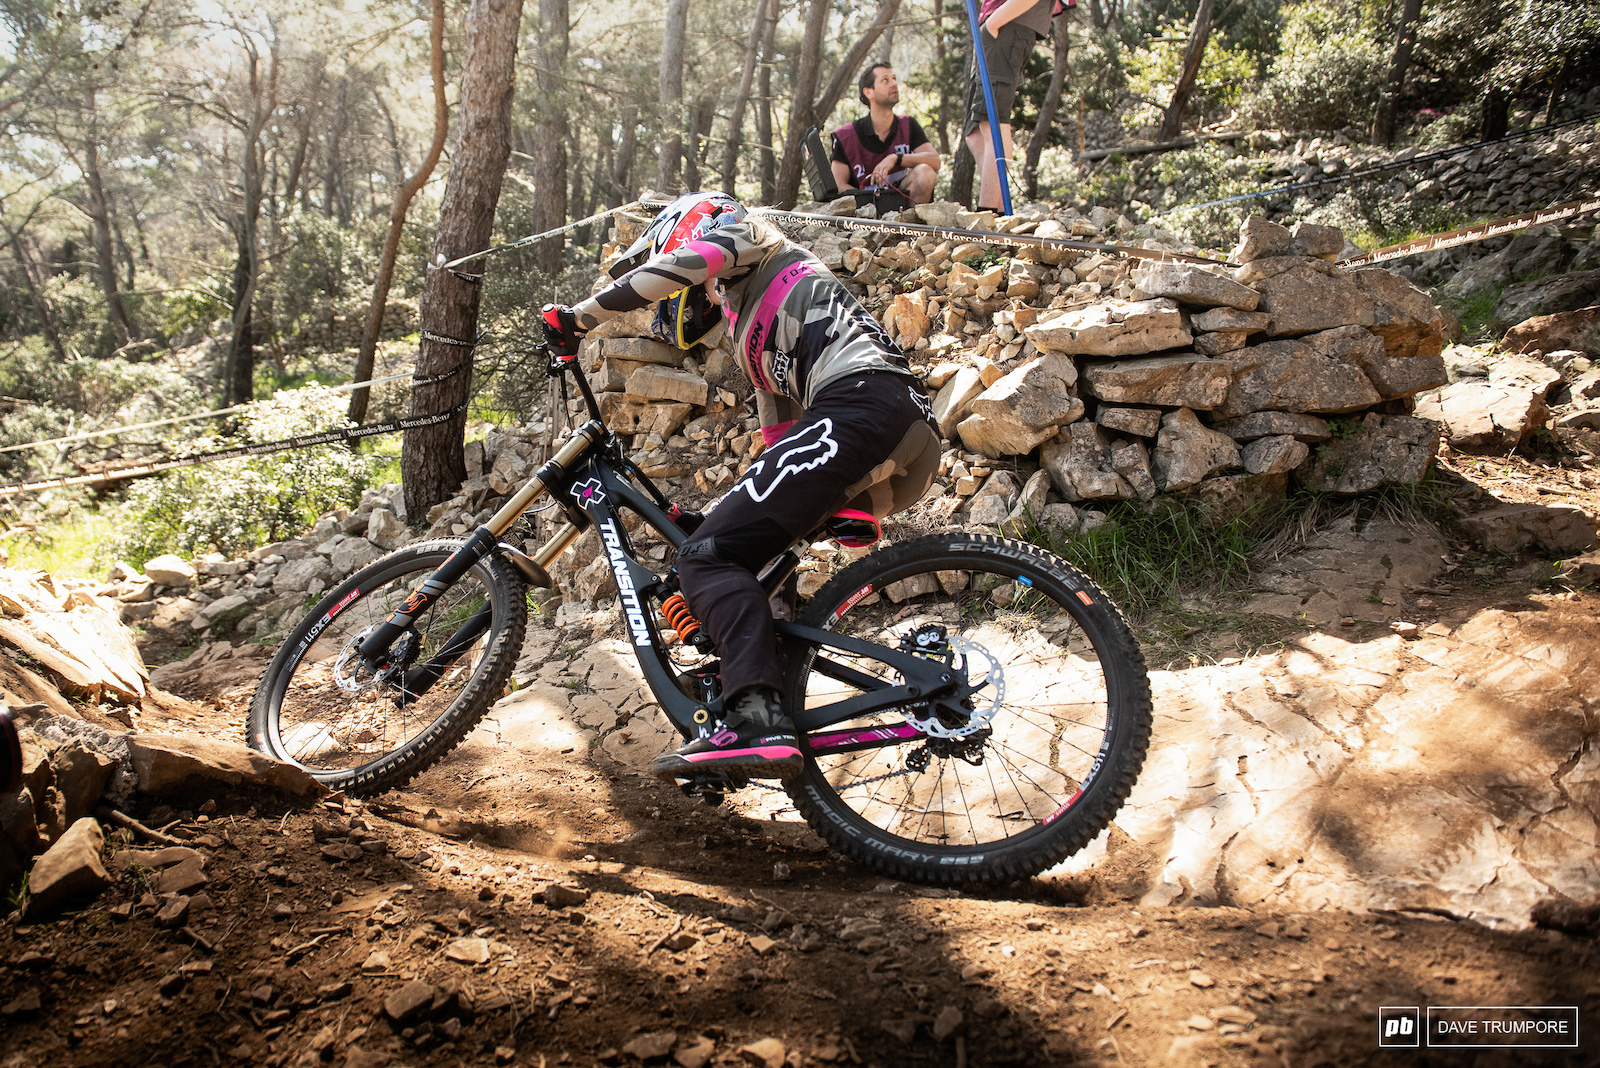 Tahnee Seagrave through some slow and awkward corners